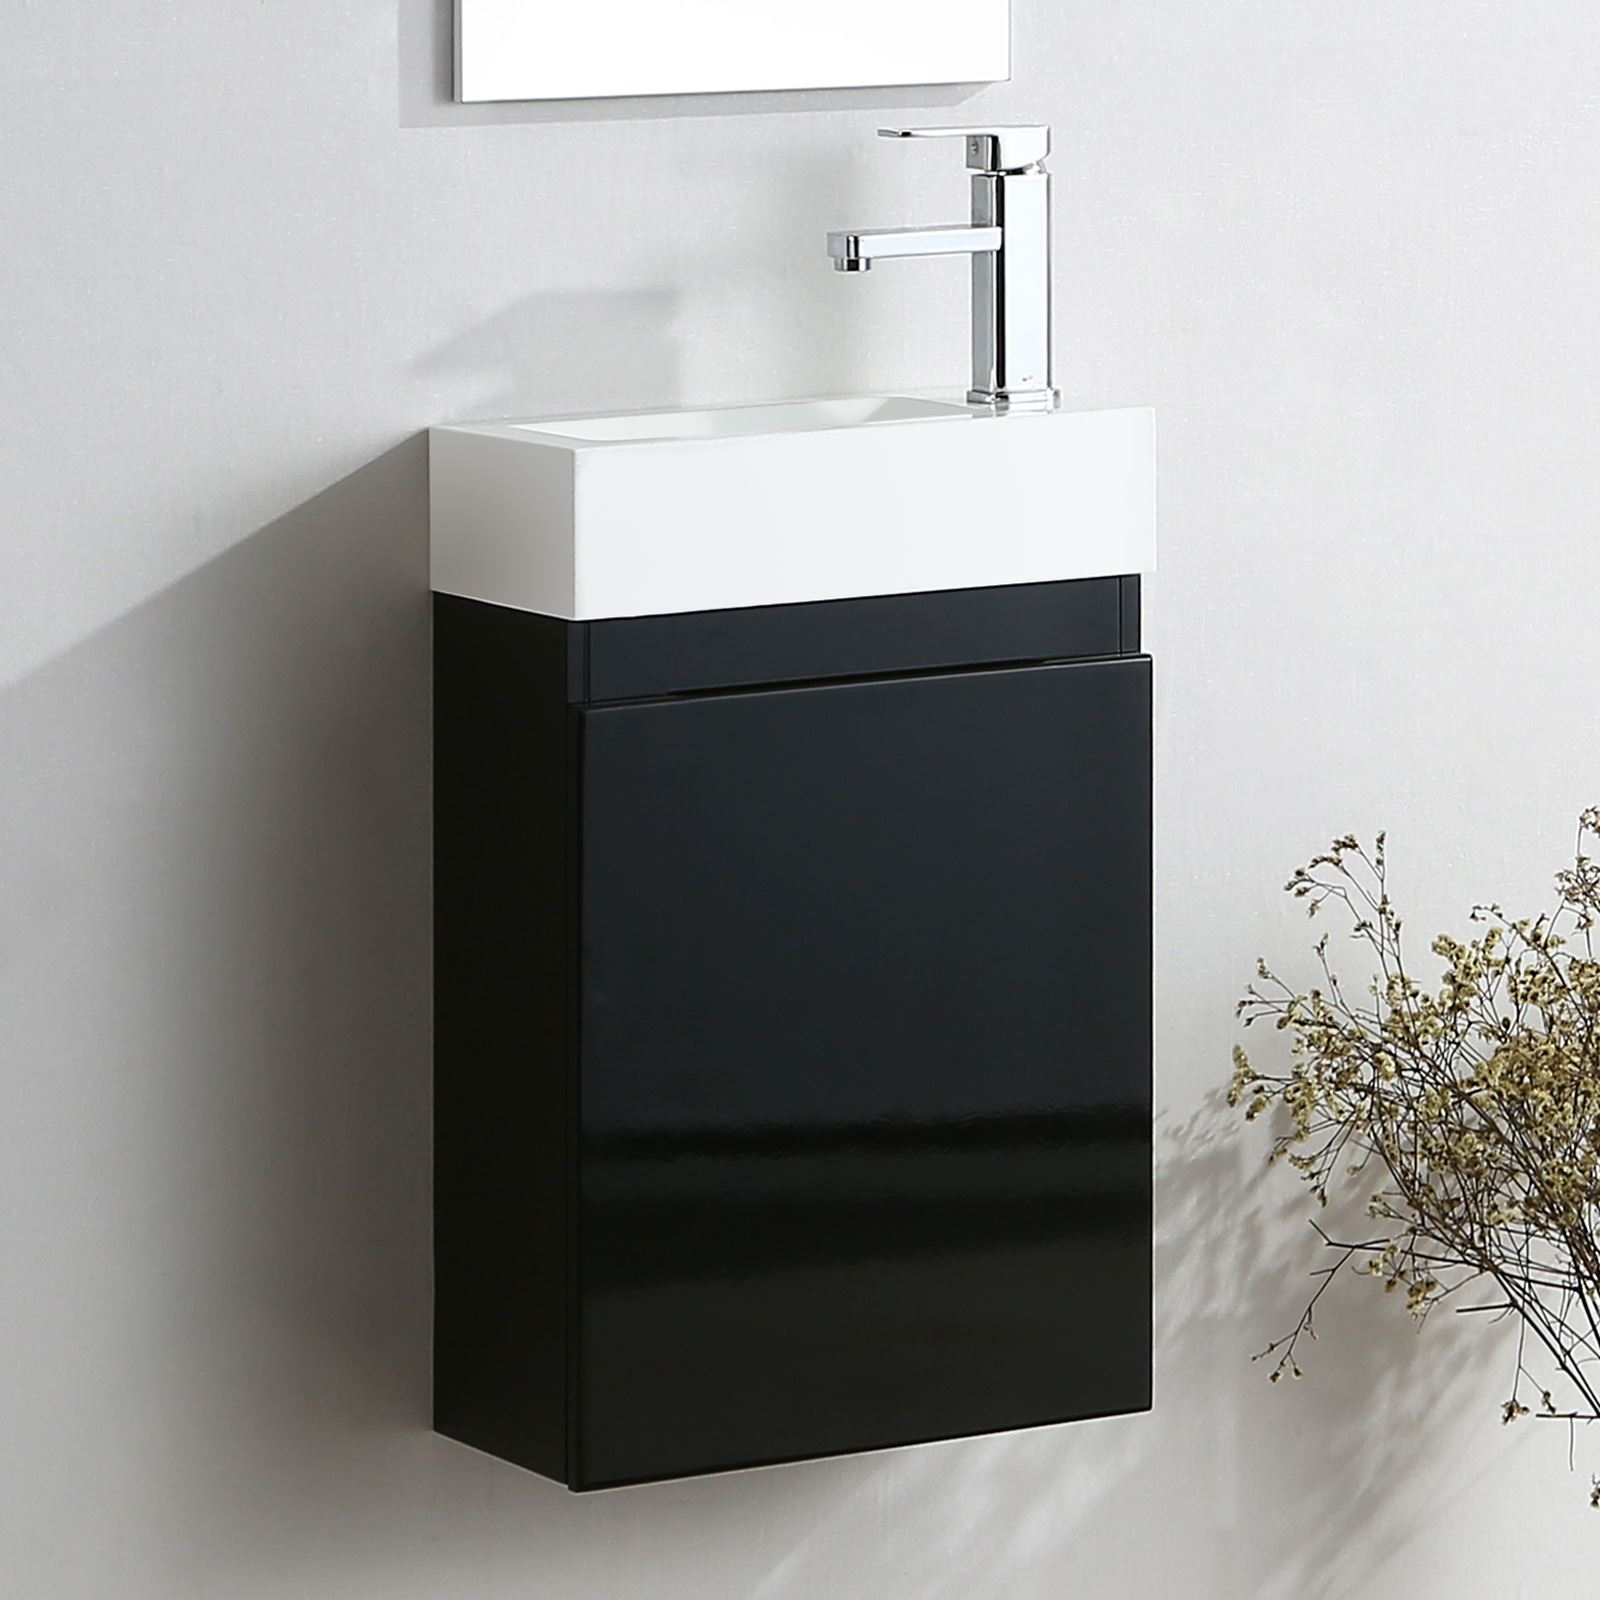 Black Bathroom Basin : FELIX BLACK CLOAKROOM BATHROOM SUITE TOILET & WHITE BASIN VANITY UNIT ...